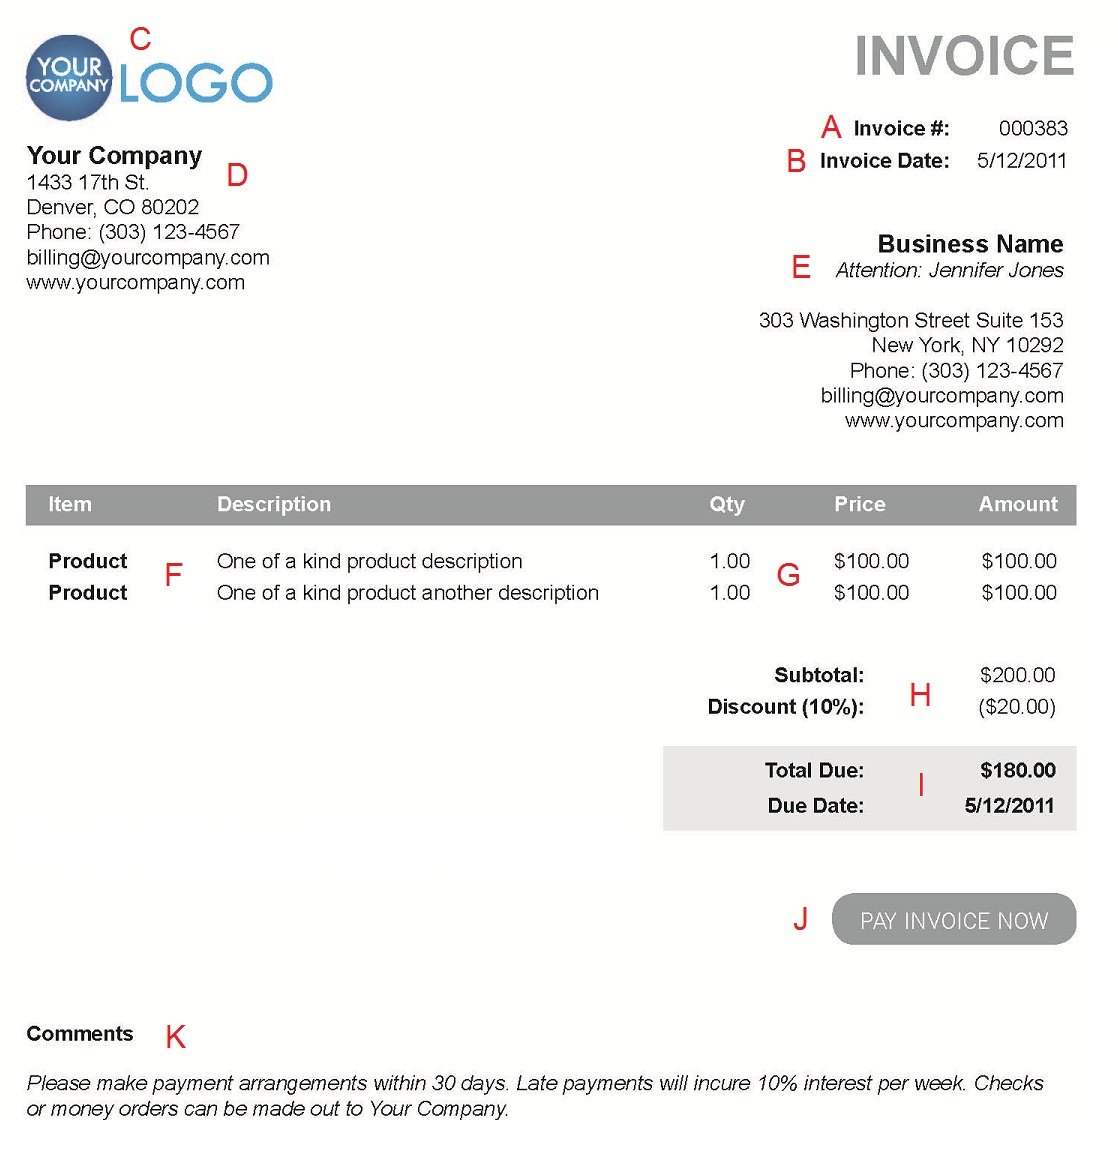 Coolmathgamesus  Pleasing The  Different Sections Of An Electronic Payment Invoice With Fair A  With Adorable Read Receipts Gmail Also Walmart Receipt Generator In Addition San Francisco Gross Receipts Tax And Costco Return Policy Without Receipt As Well As Receipts Scanner Additionally Usps Tracking Number On Receipt From Paysimplecom With Coolmathgamesus  Fair The  Different Sections Of An Electronic Payment Invoice With Adorable A  And Pleasing Read Receipts Gmail Also Walmart Receipt Generator In Addition San Francisco Gross Receipts Tax From Paysimplecom